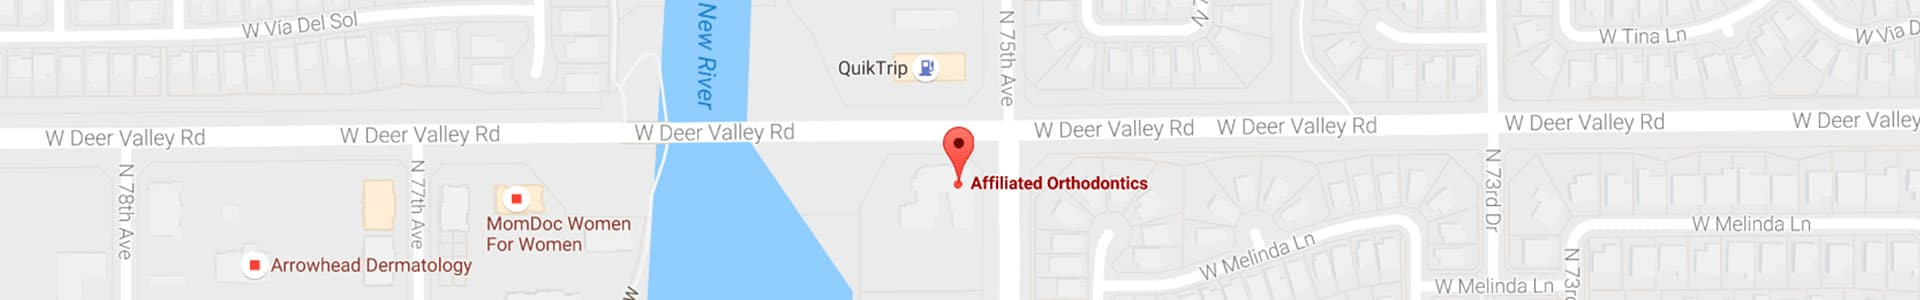 Affiliated Orthodontics Footer Map Graphic Affiliated Orthodontics Peoria AZ